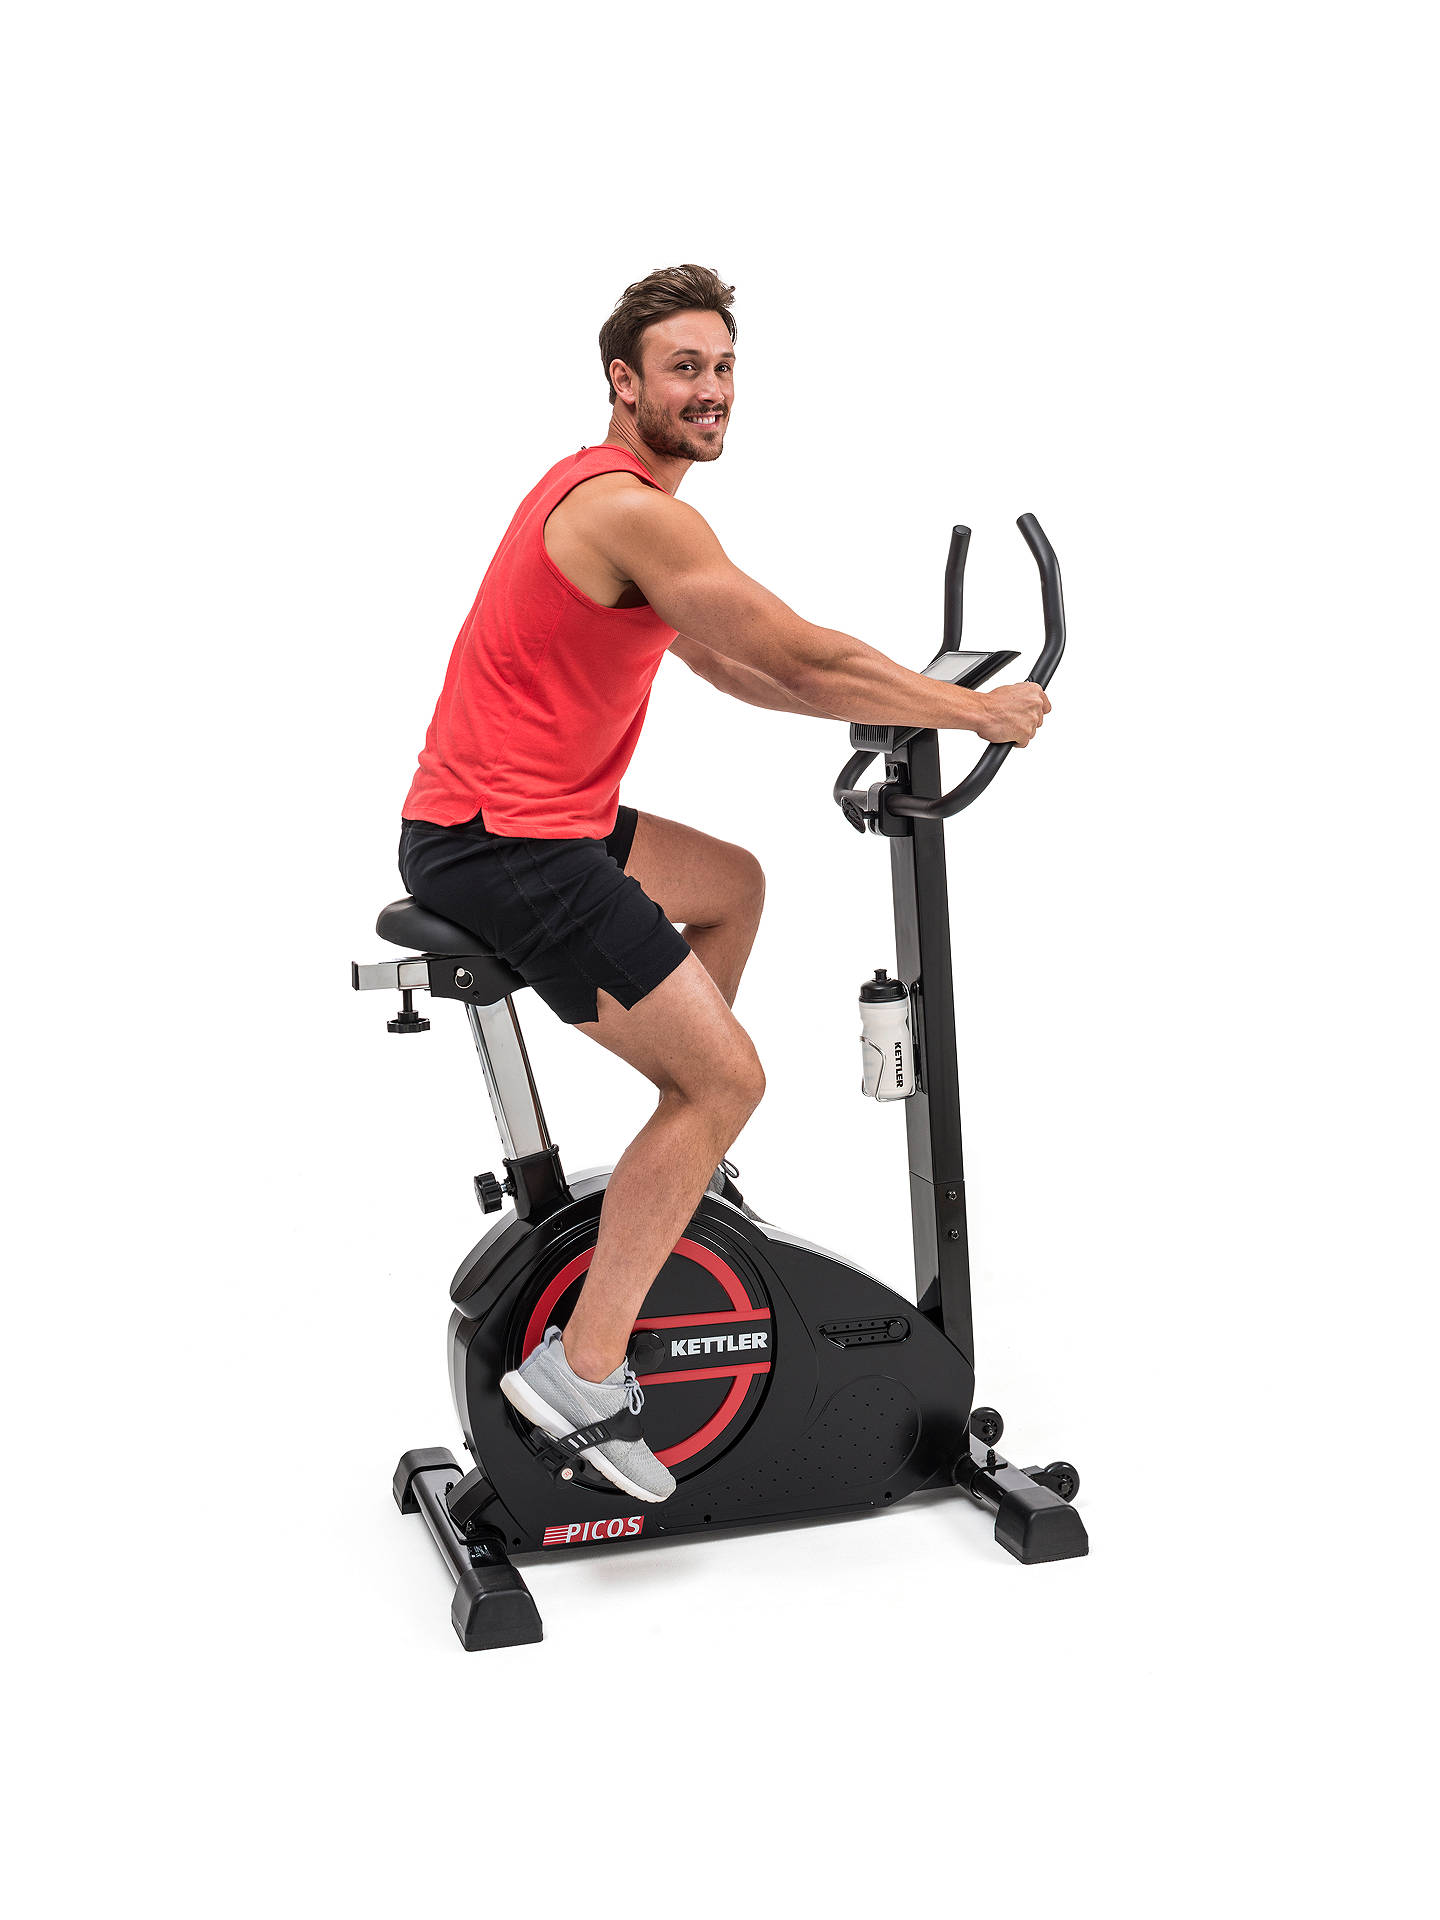 Buy KETTLER Sport Picos Exercise Bike, Black/Red Online at johnlewis.com